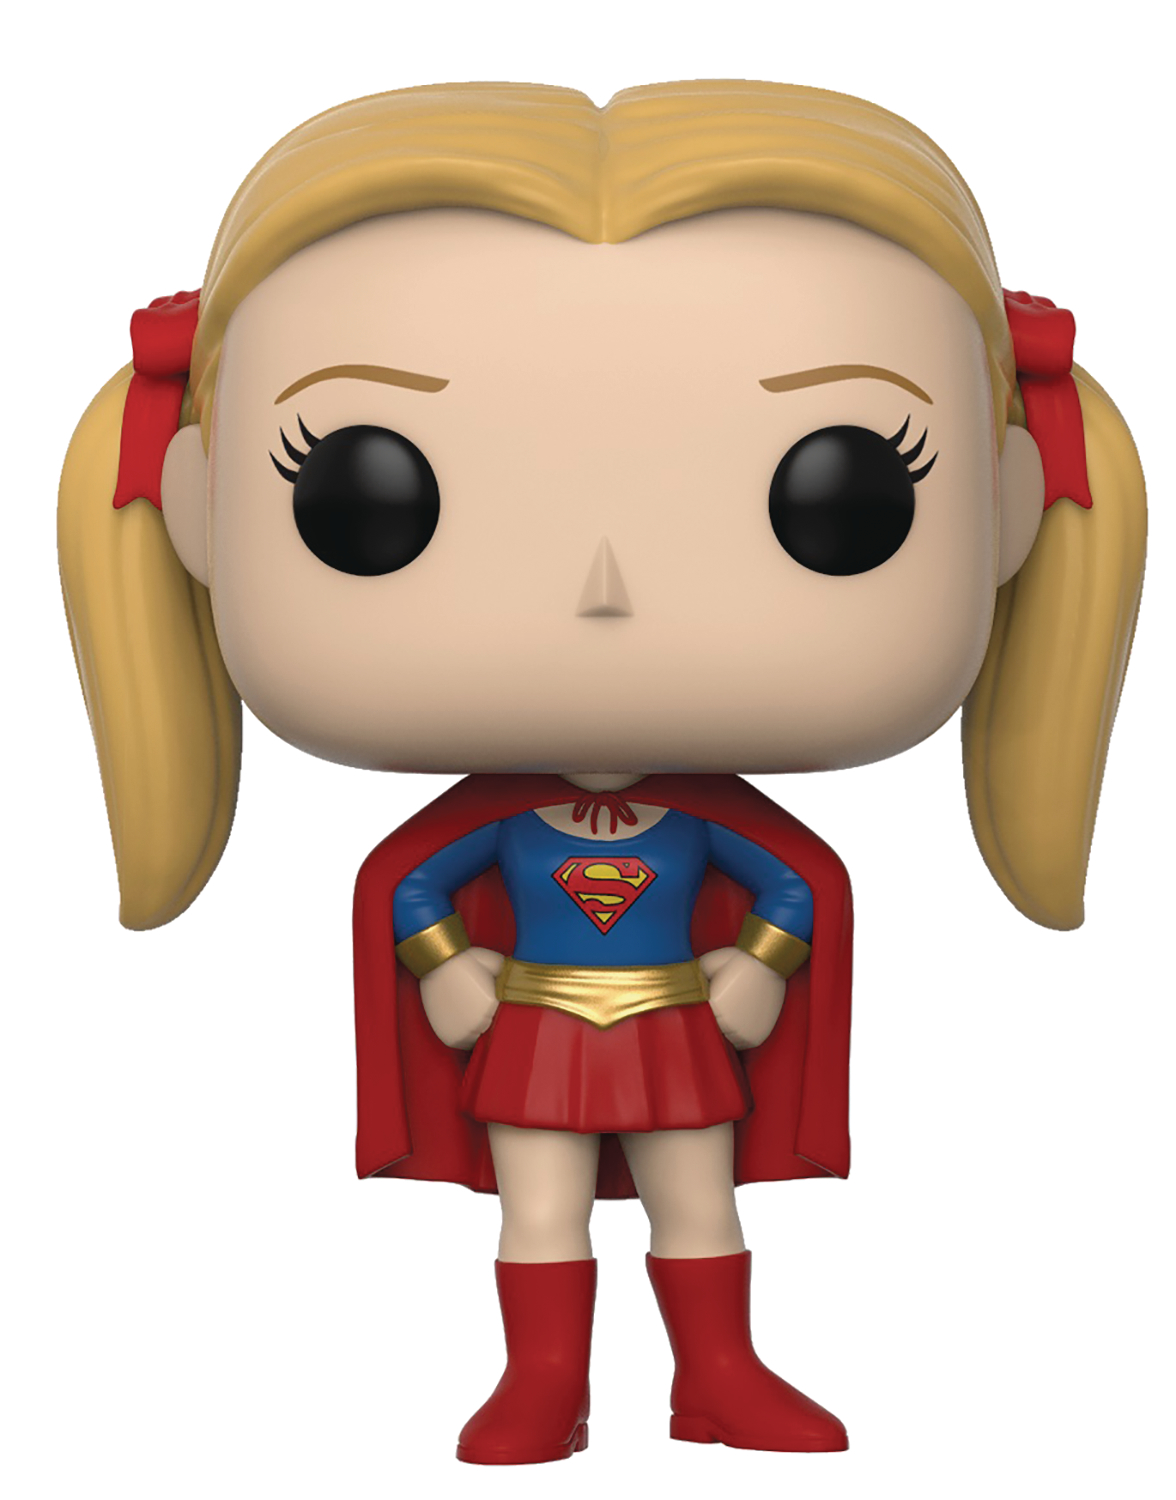 POP TV FRIENDS W2 PHOEBE AS SUPERGIRL VINYL FIGURE (MAY18981